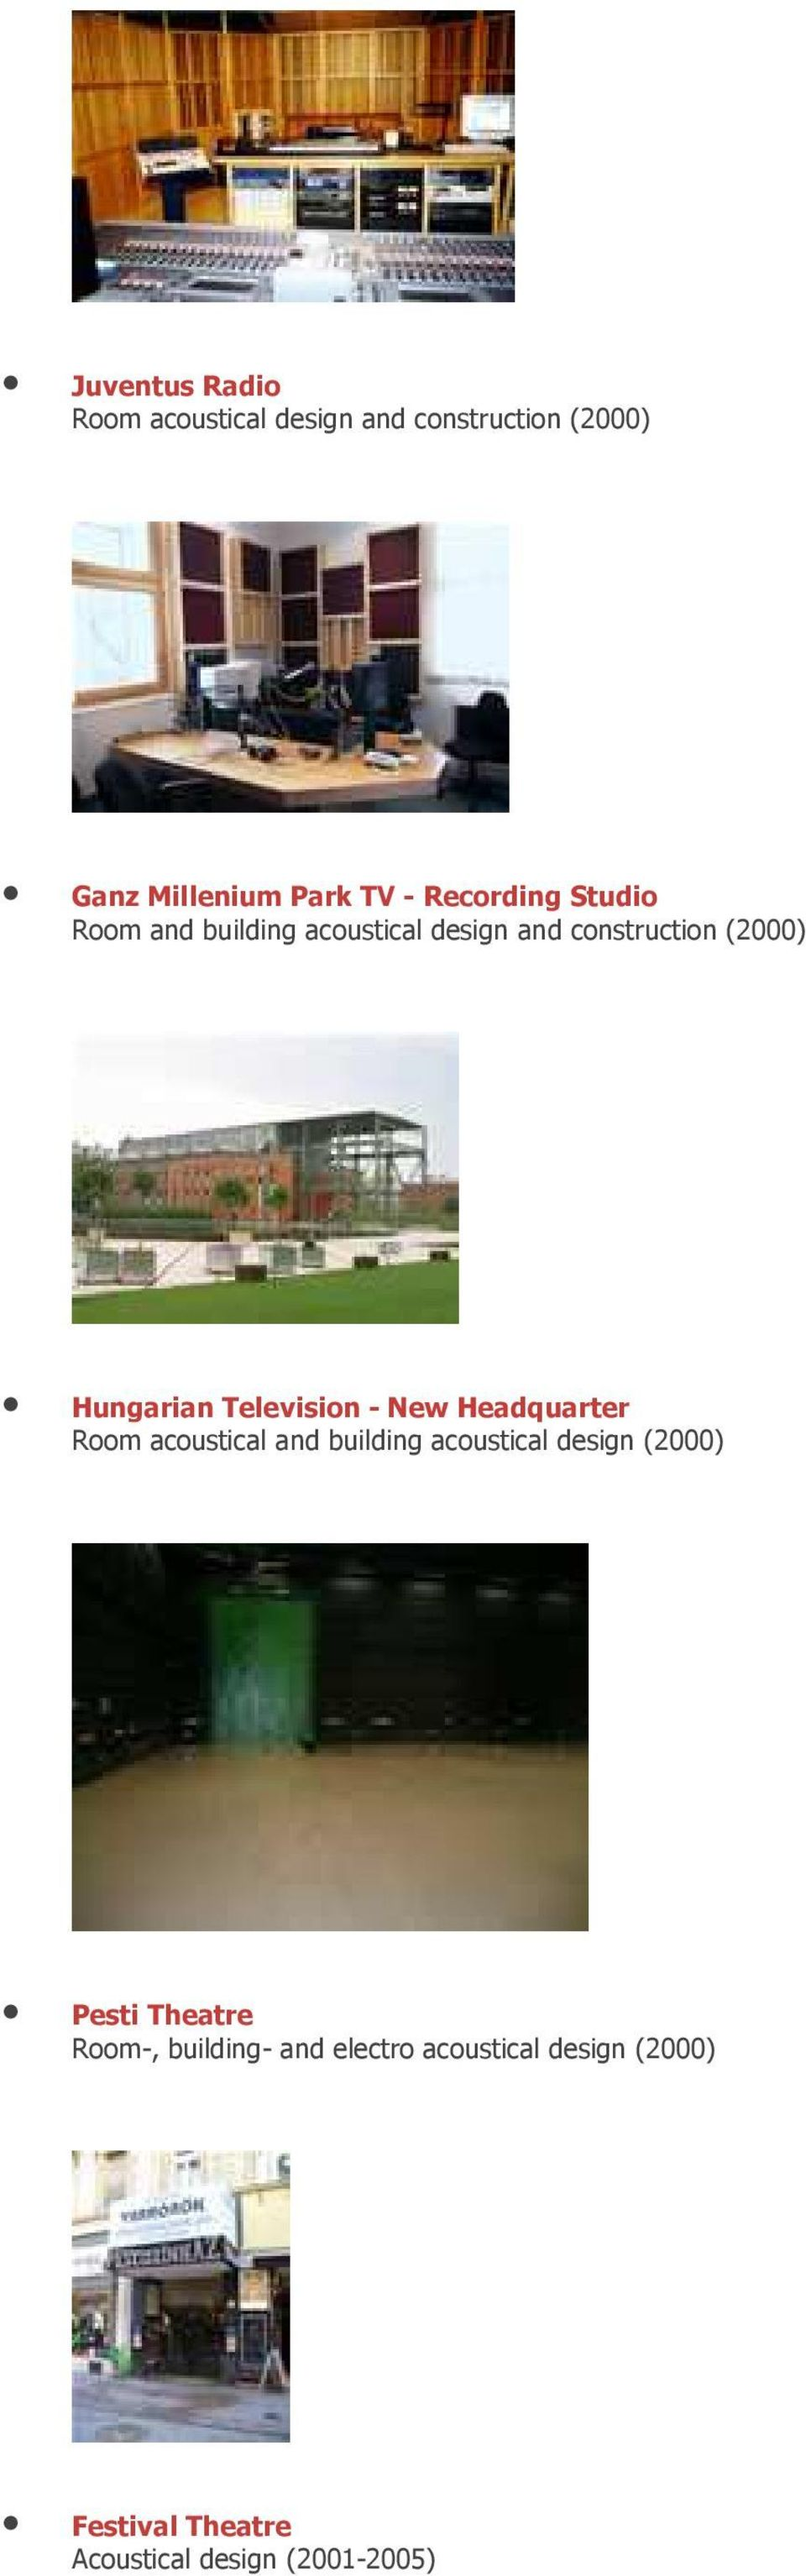 Television - New Headquarter Room acoustical and building acoustical design (2000) Pesti